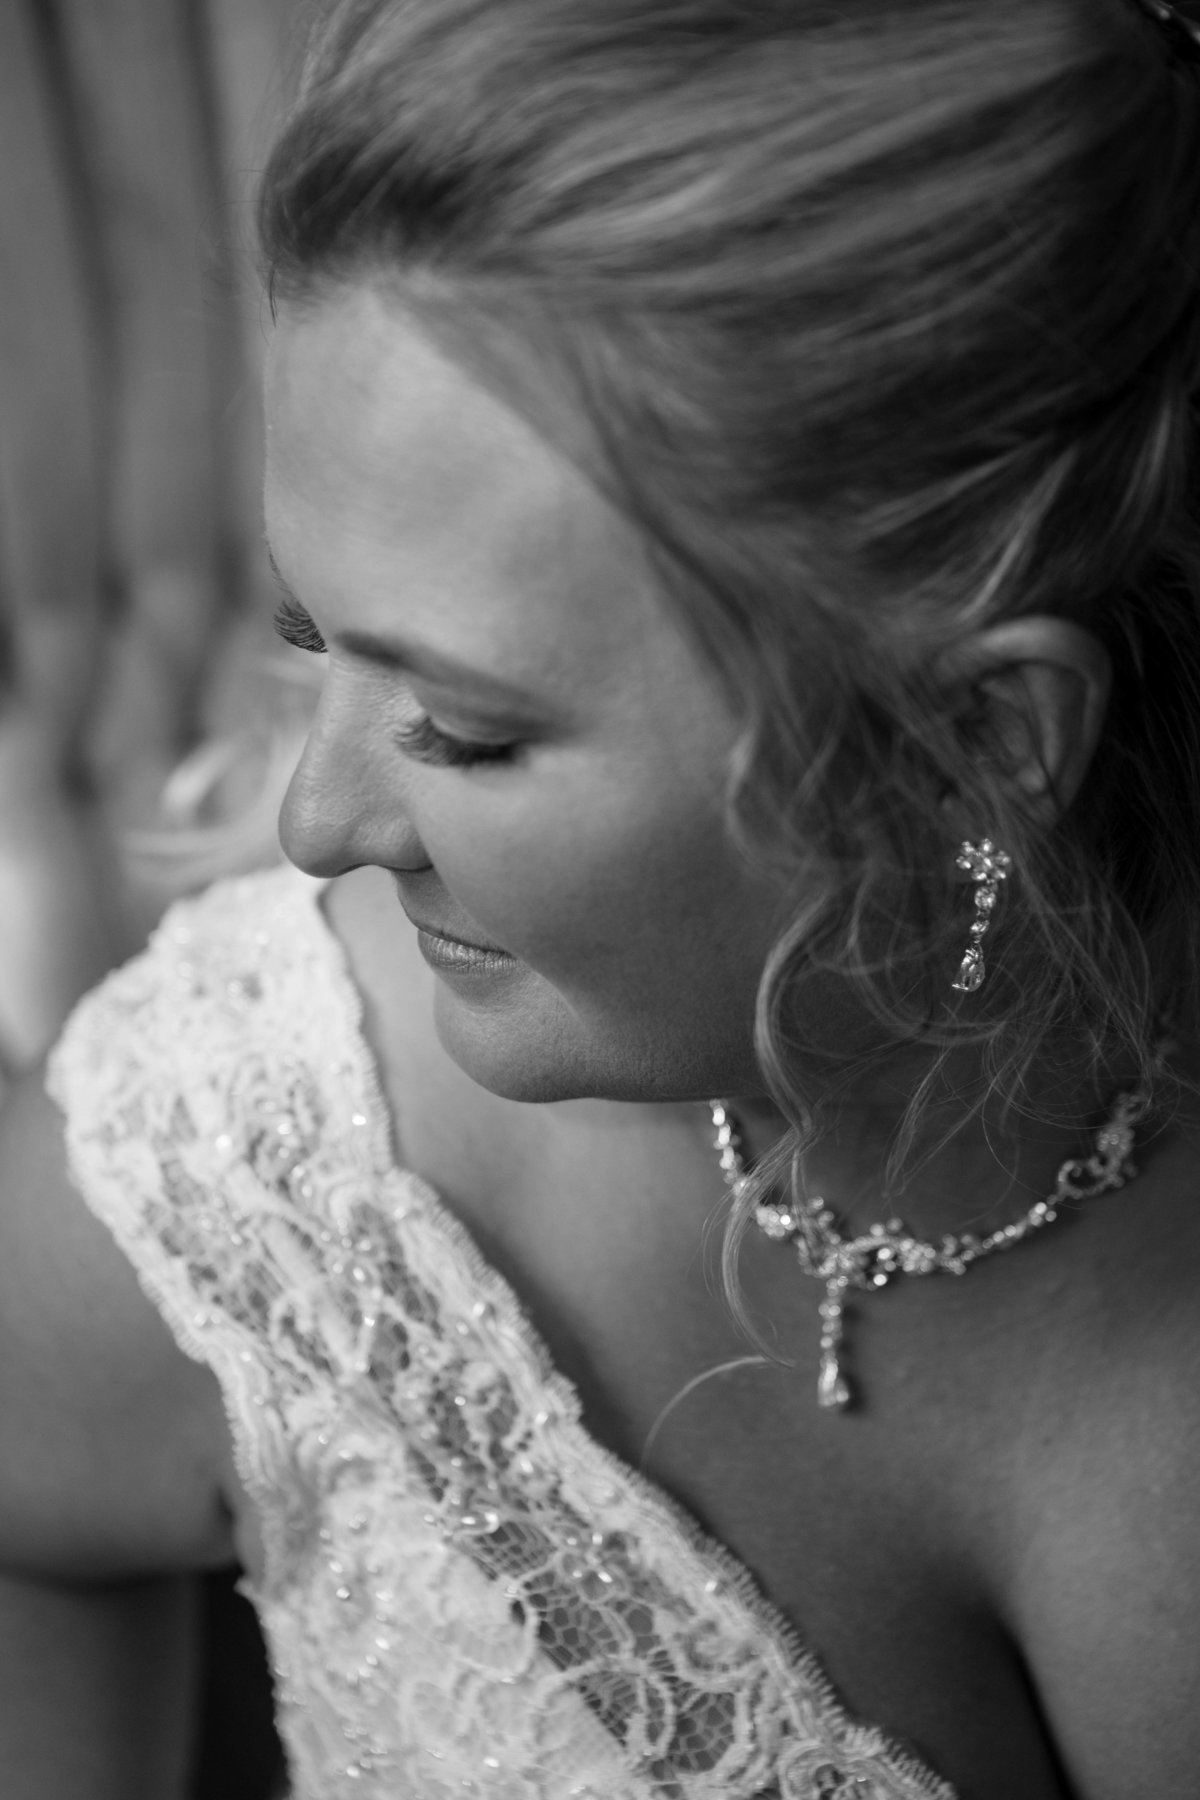 earrings and necklace on bride